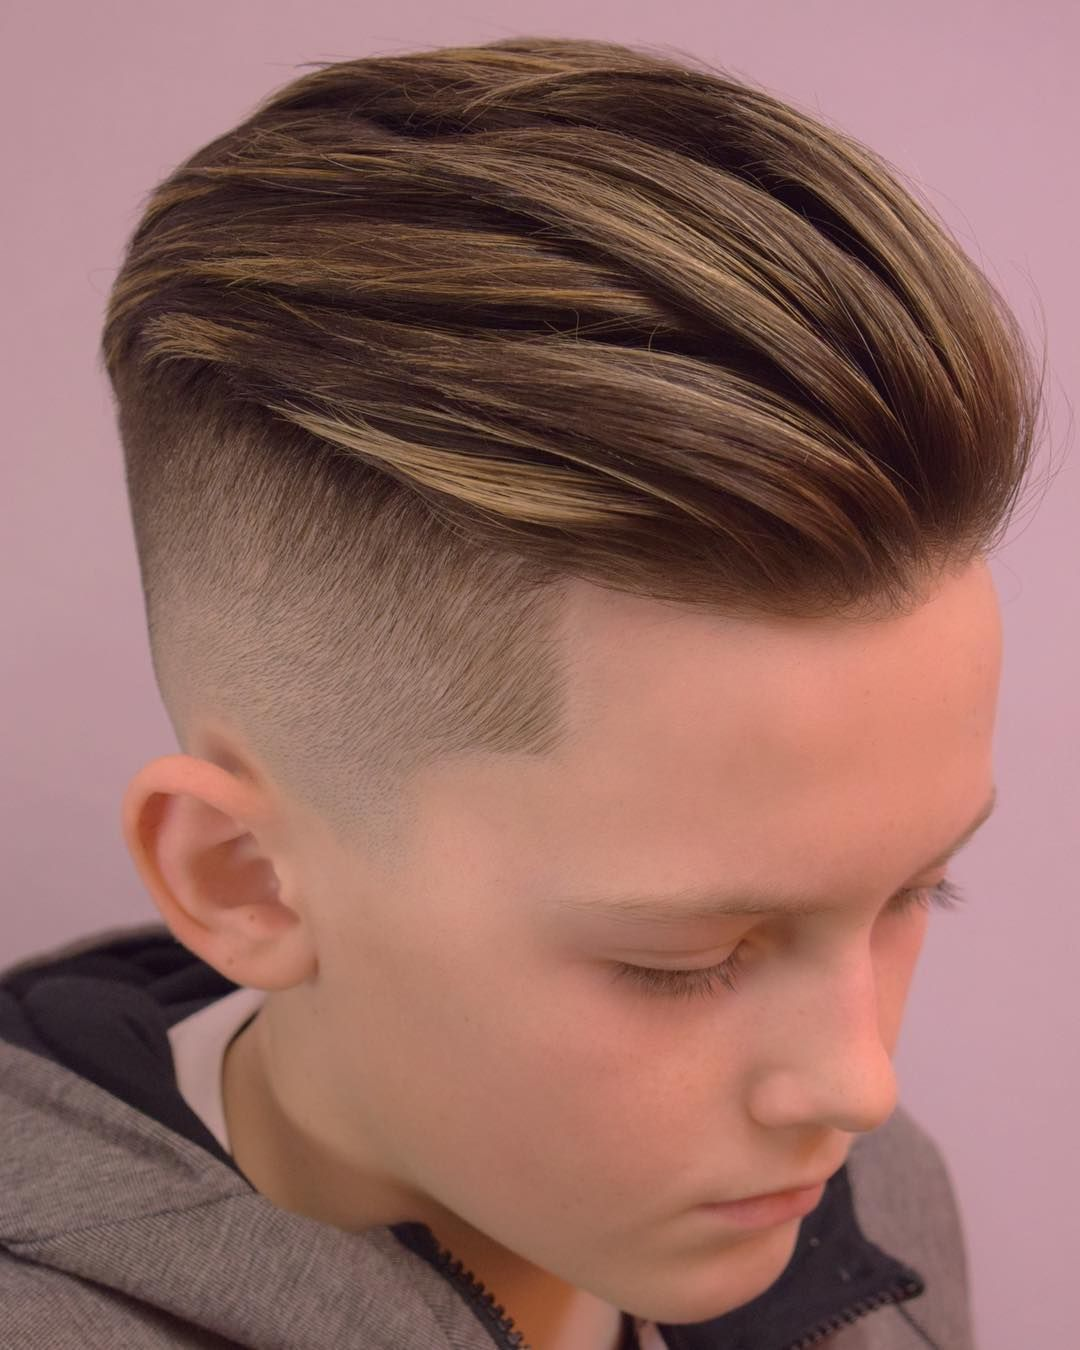 Boys Hair Styles Alluring Undercuts Hairstyles Boys  Textured Hairstyles & Haircuts